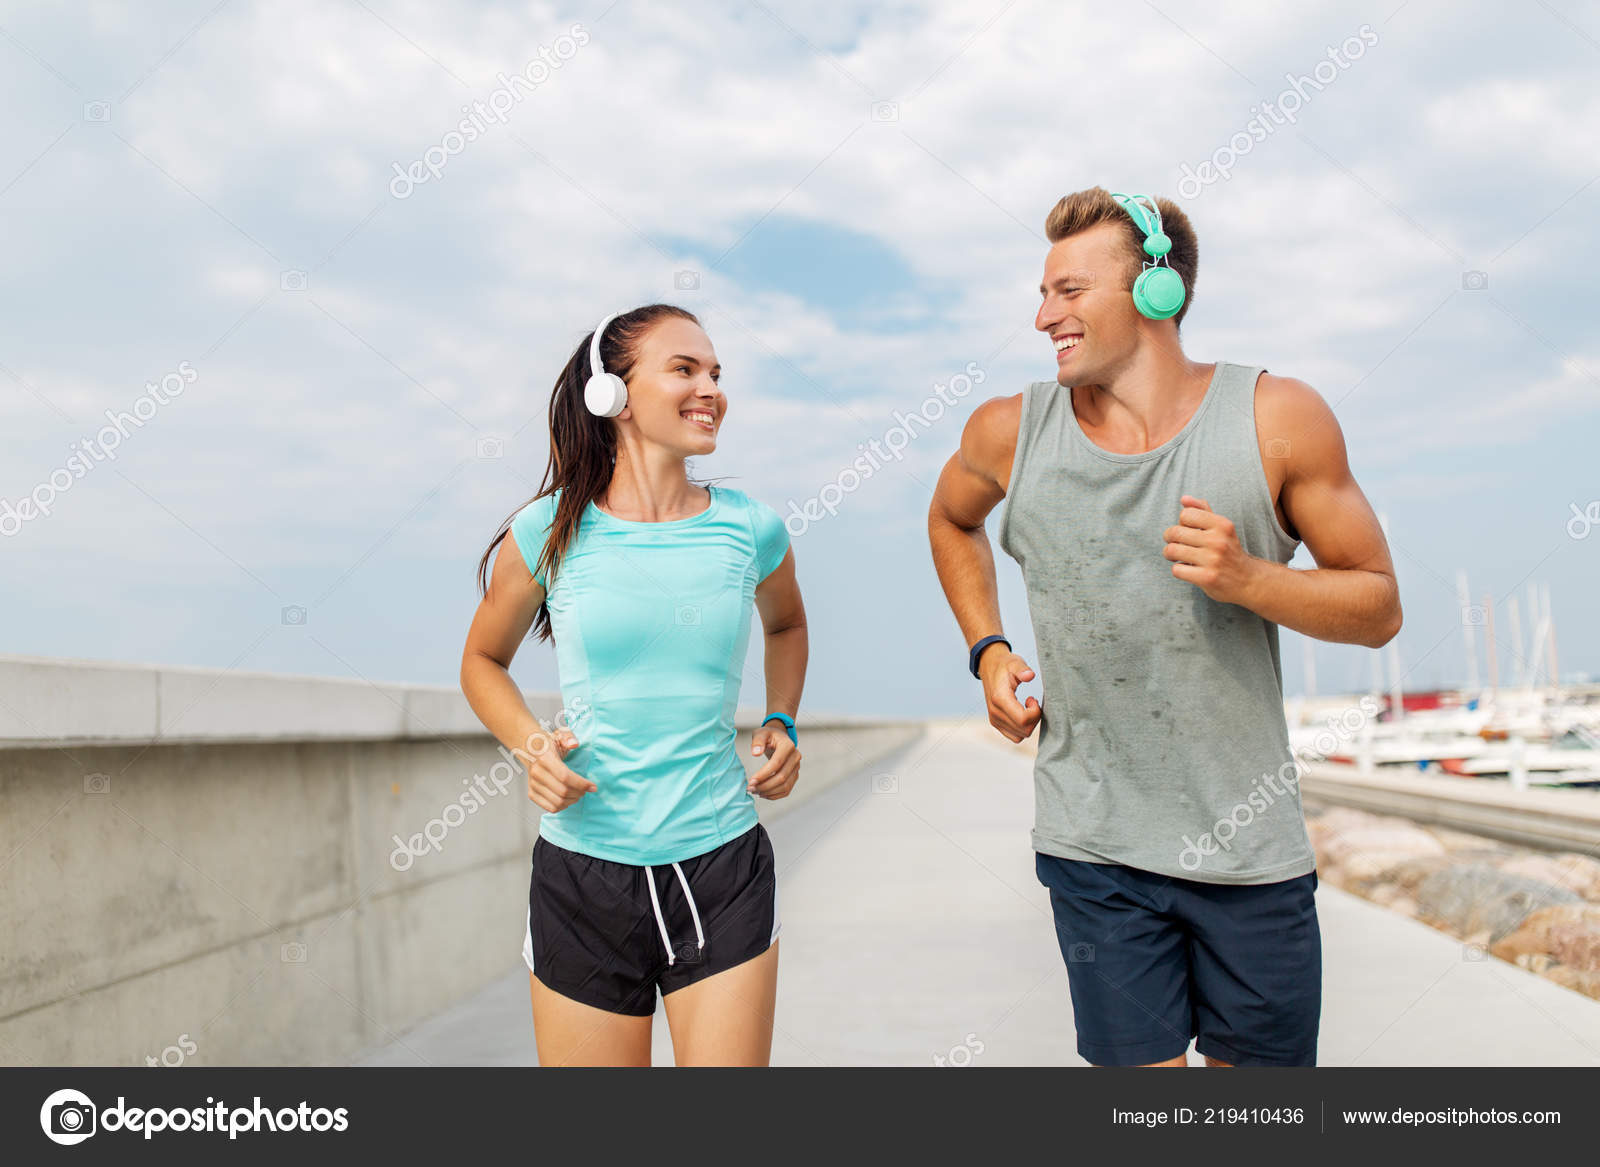 Music While Exercising